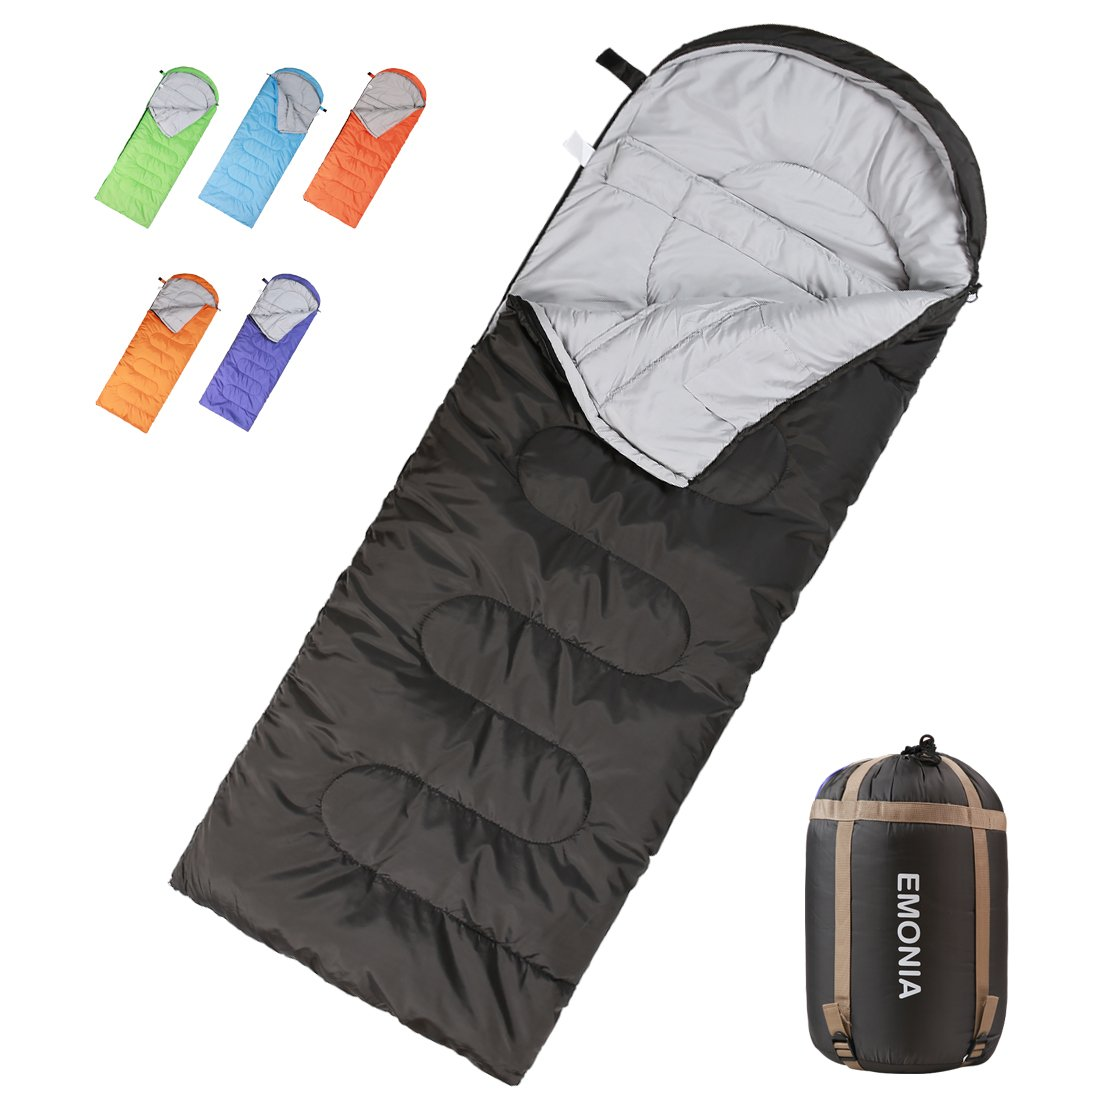 EMONIA Camping Sleeping Bag,3 Season Waterproof Outdoor Hiking Backpacking Sleeping Bag Perfect for Traveling,Lightweight Portable Envelope Sleeping Bags for Adults,Girls and Boys by EMONIA